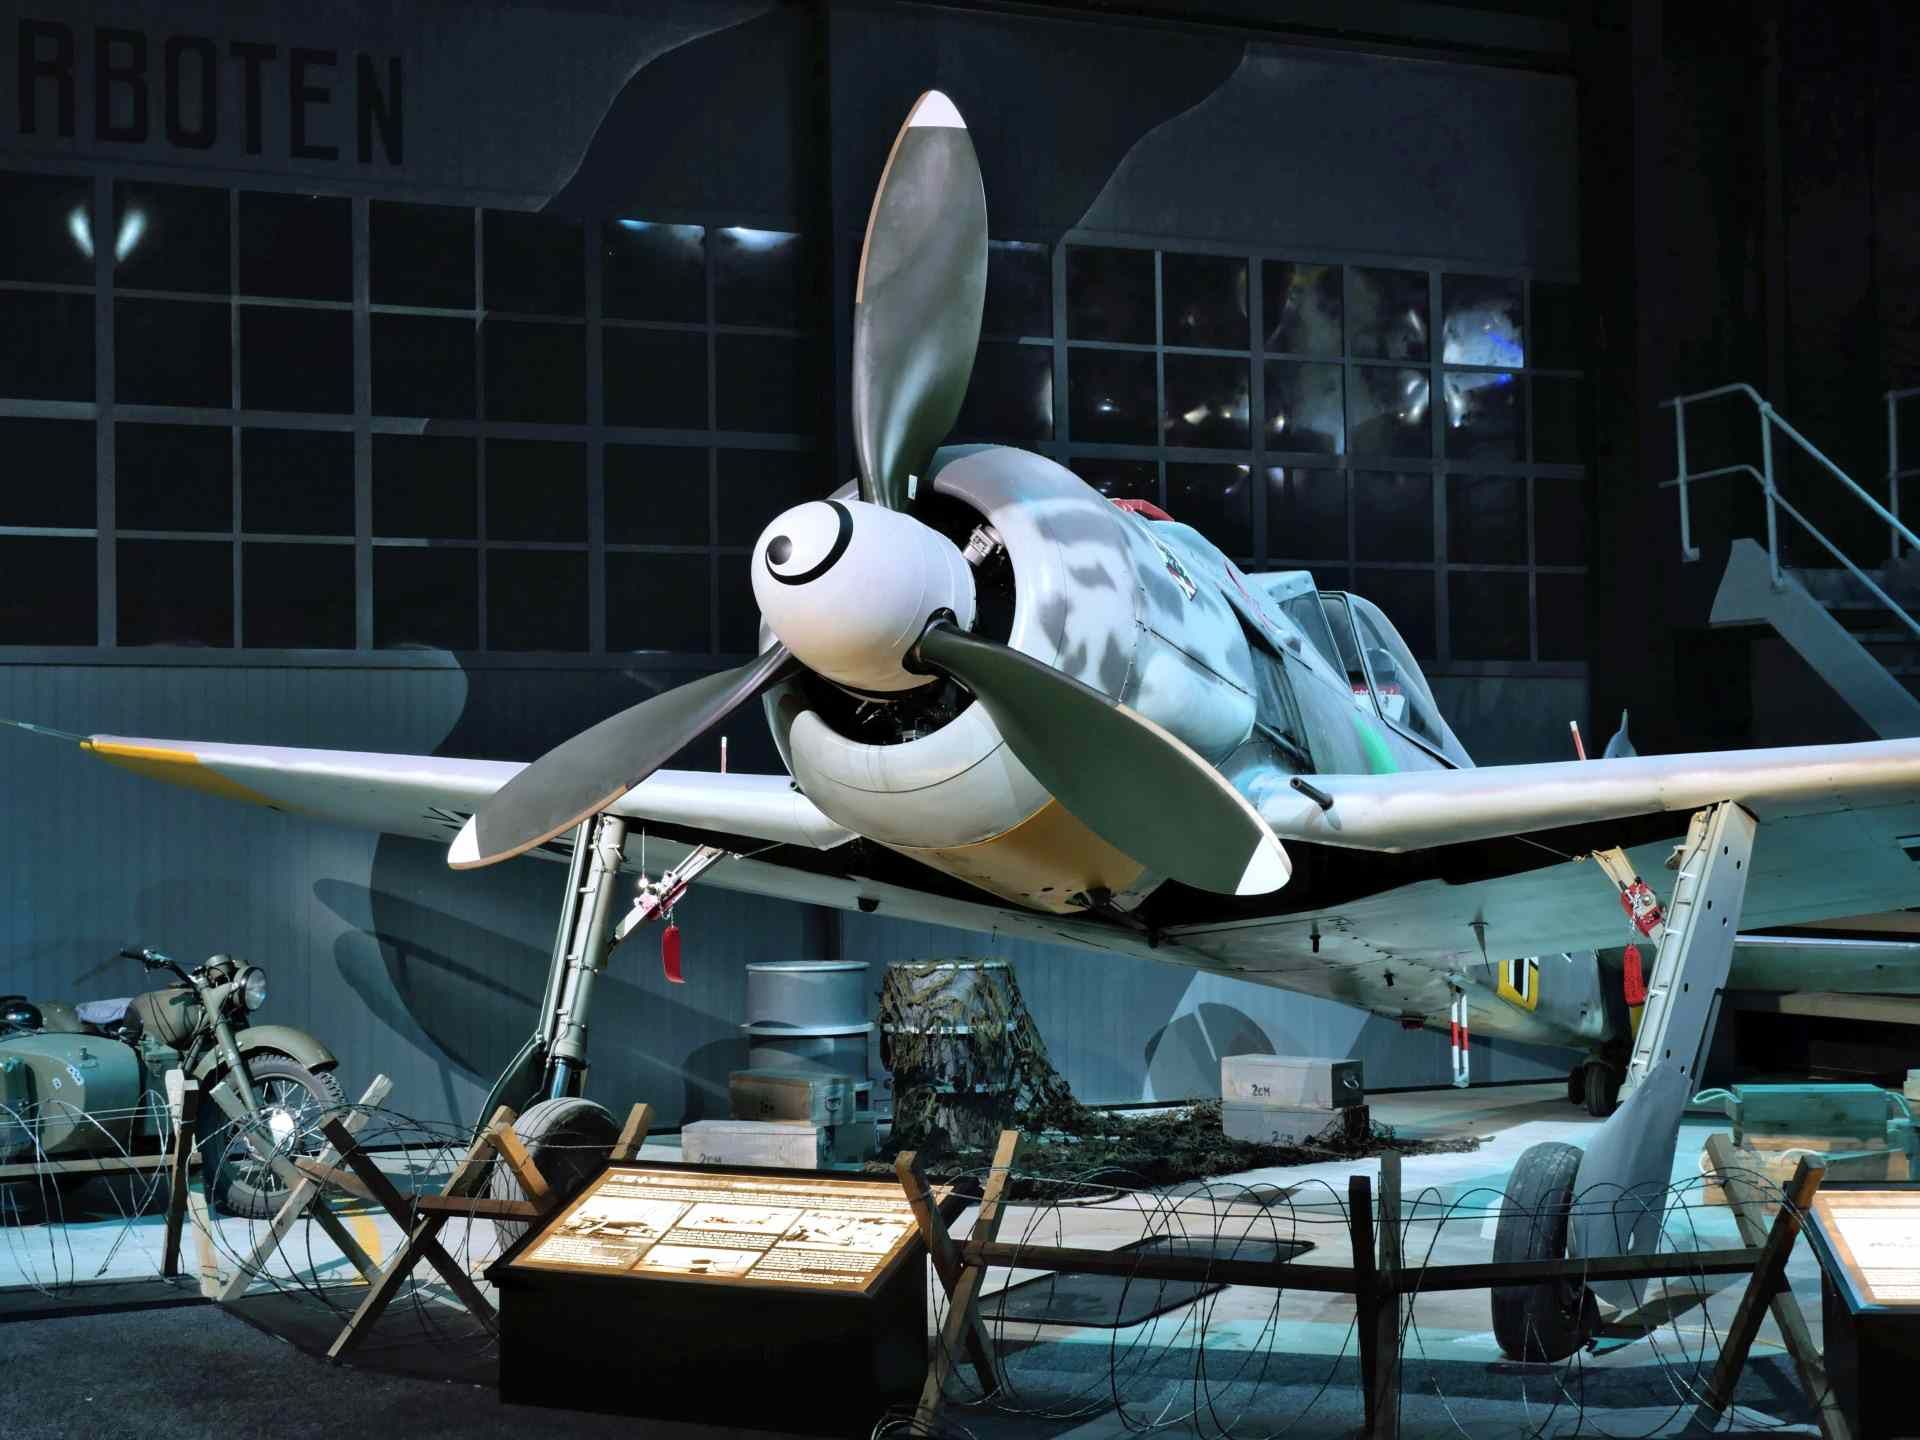 White propeller plane in a hangar-style aviation museum display